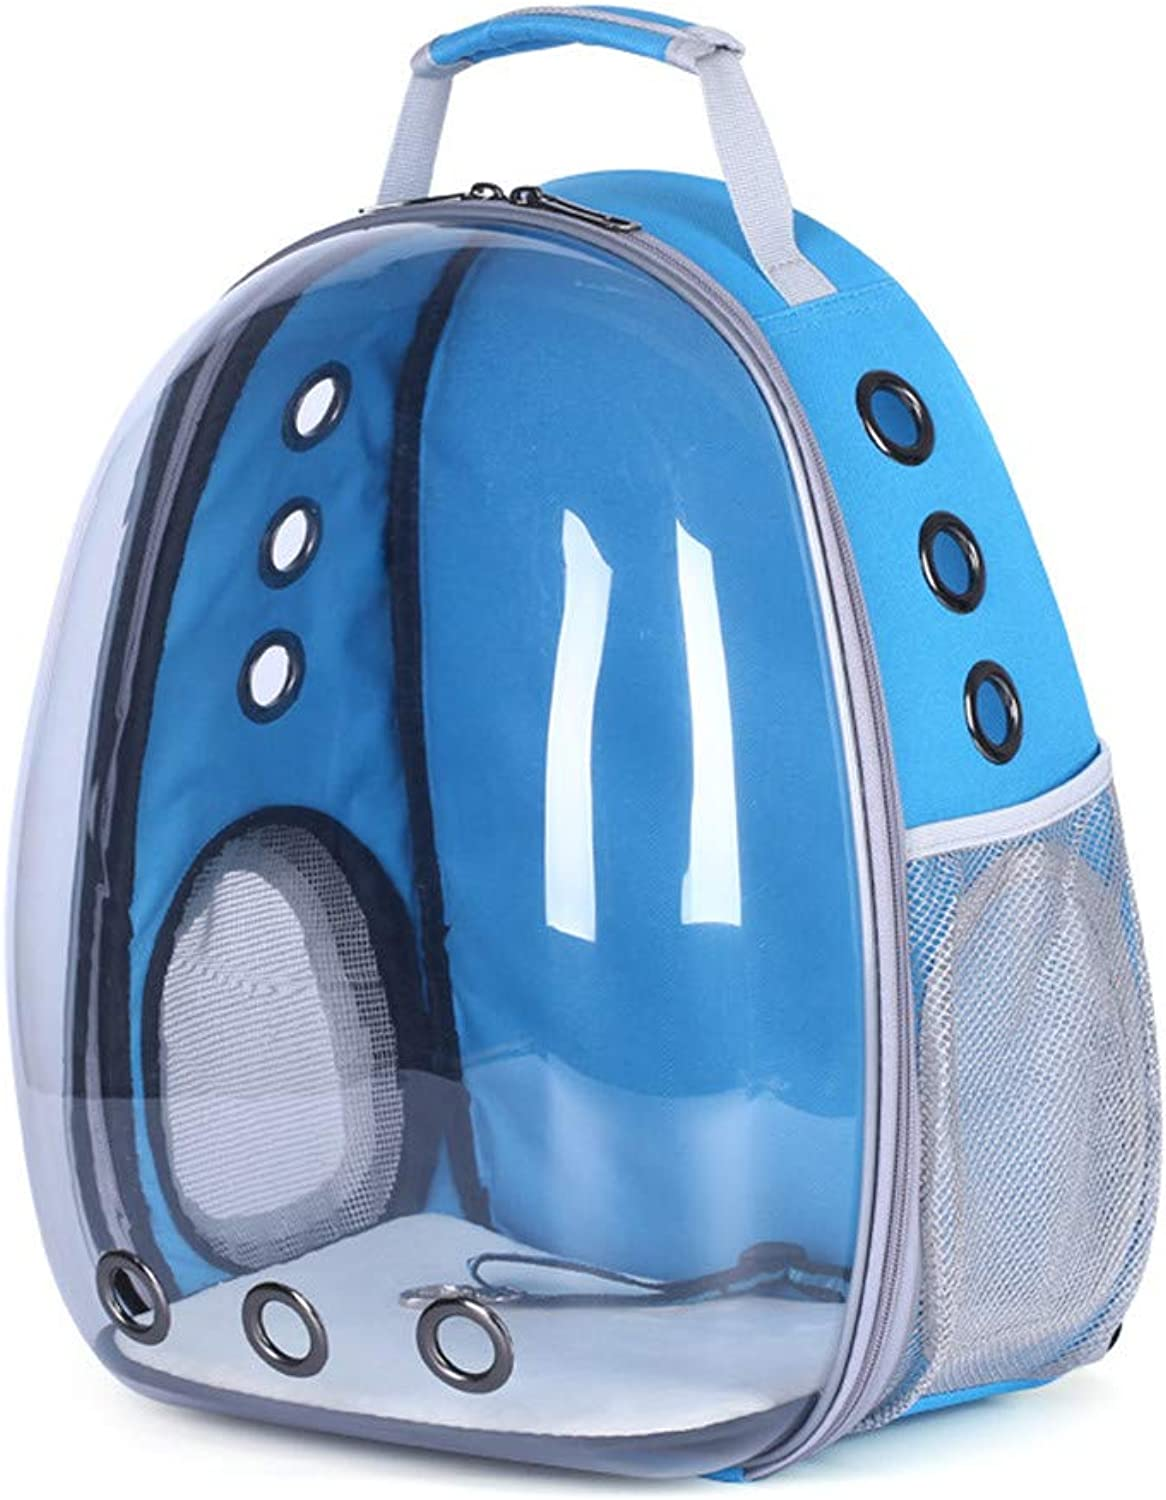 DHCY Transparent pet backpack out multifunction portable shoulder pet supplies cat dog cage pet space capsule backpack outdoor travel